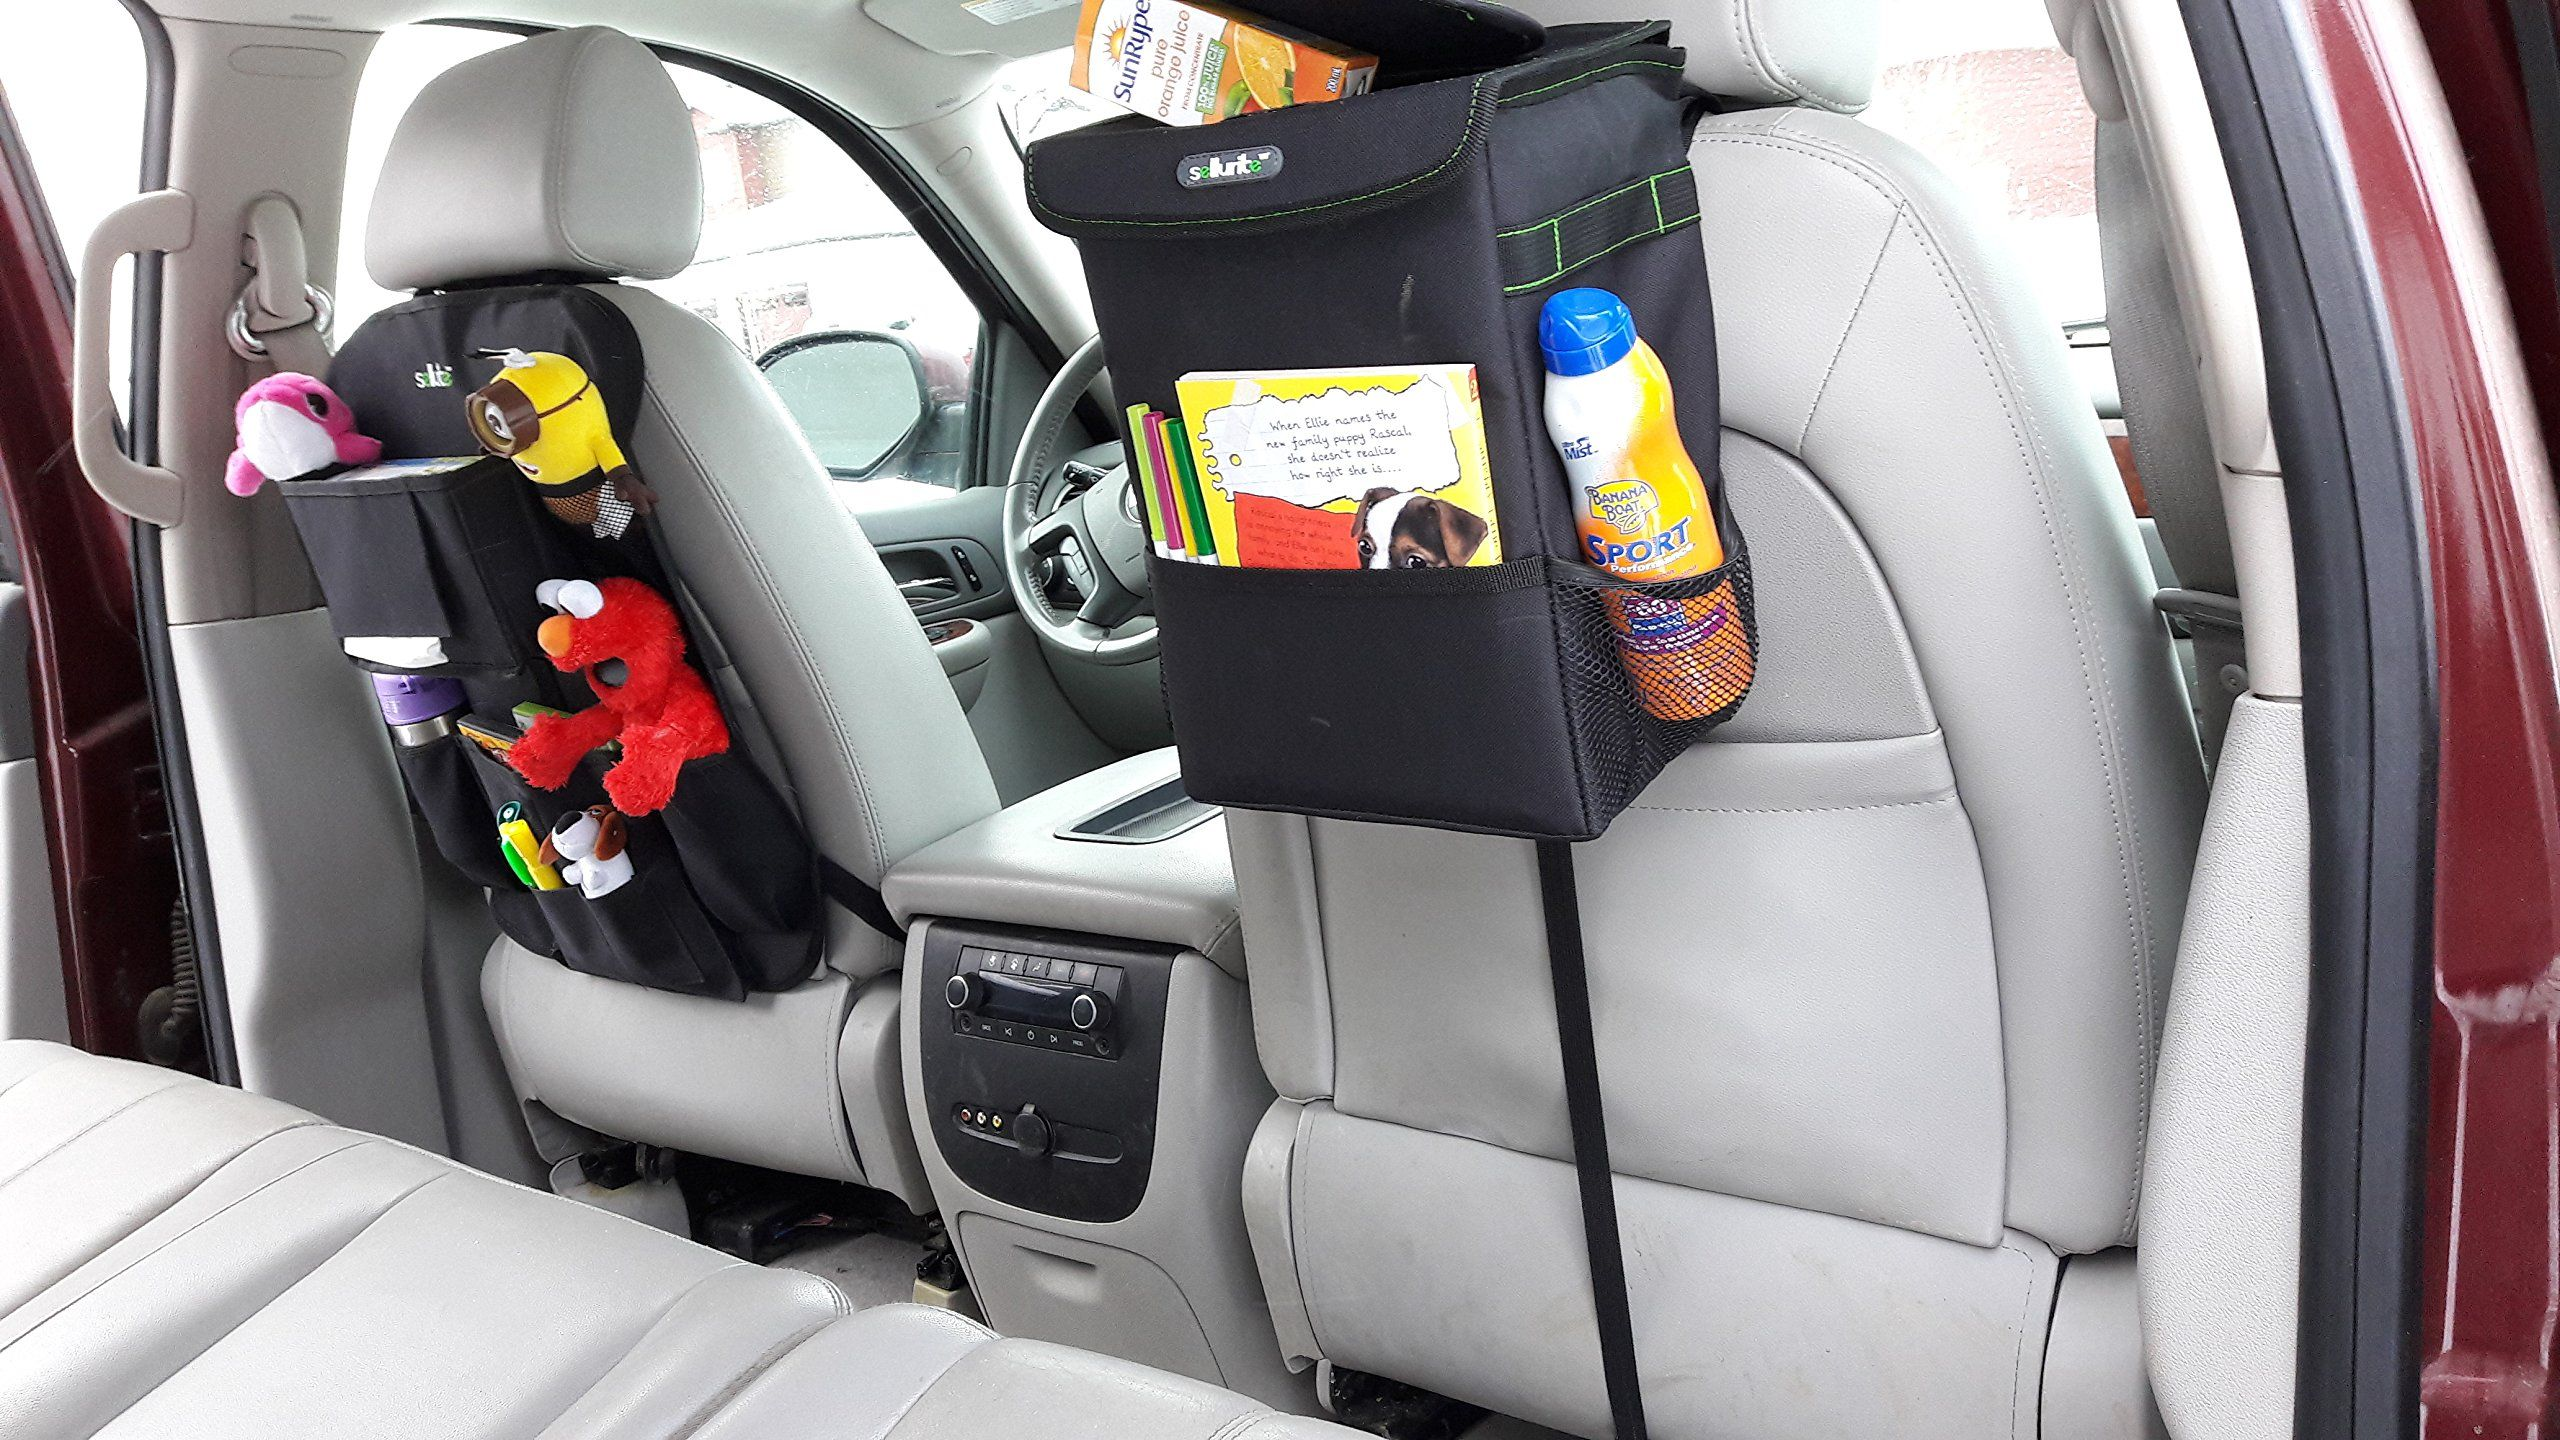 Sellurite Car Trash Can And Car Seat Organizer Duoa Car Garbage Can With Lid And Backseat Organizer With Cup Holder Car Seats Trash Can For Car Best Car Seats